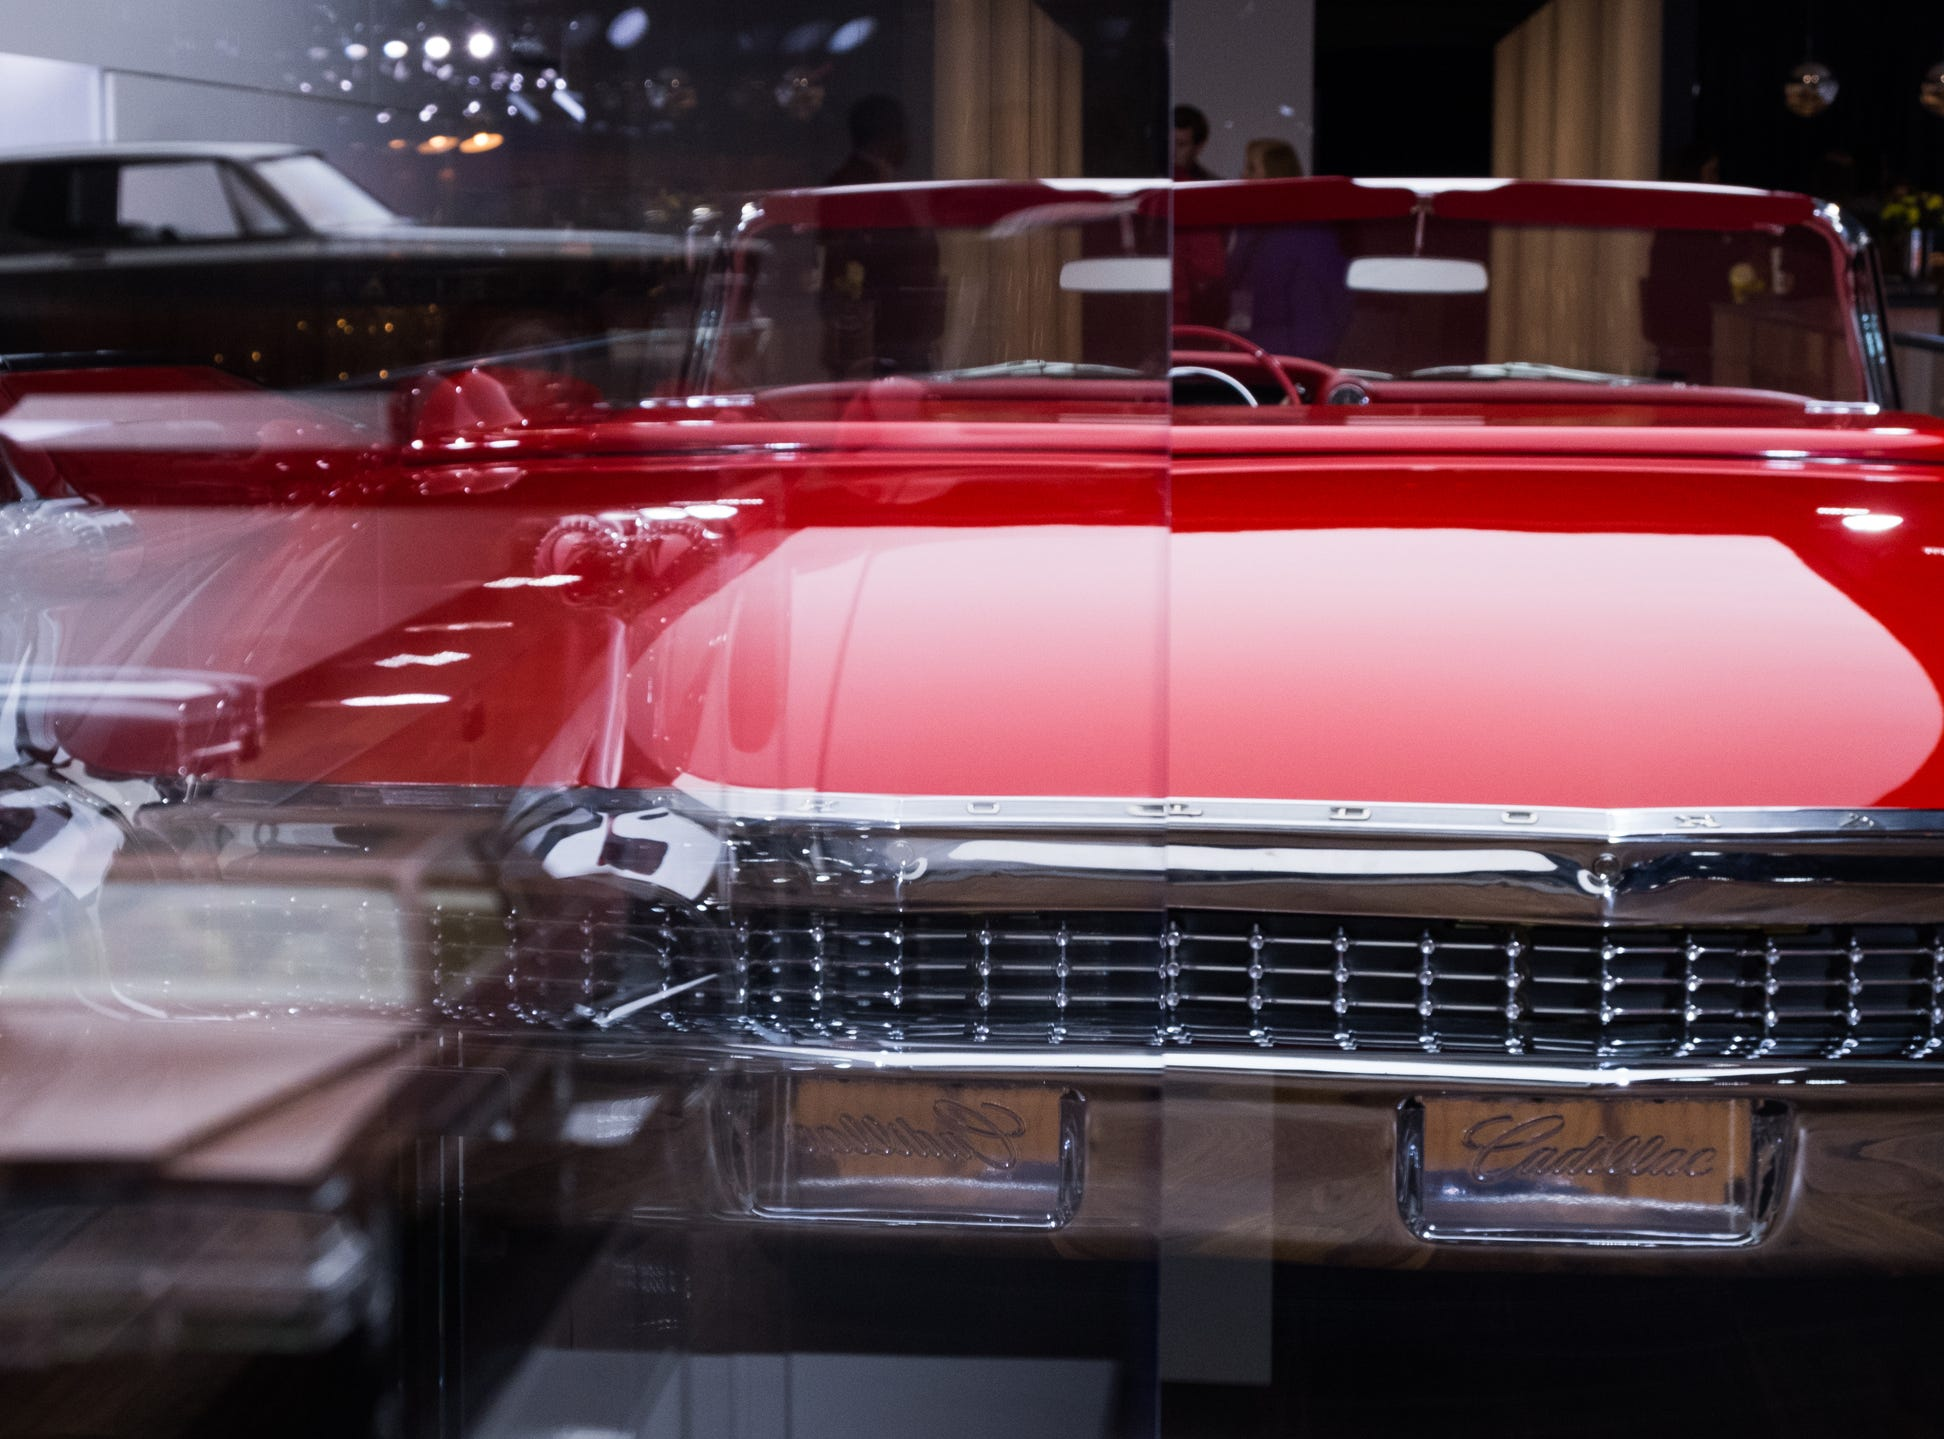 Models of Cadillac cars are on display near a 1959 Cadillac Eldorado Biarritz Convertible during the 2019 North American International Auto Show held at Cobo Center in downtown Detroit on Monday, Jan. 14, 2019.